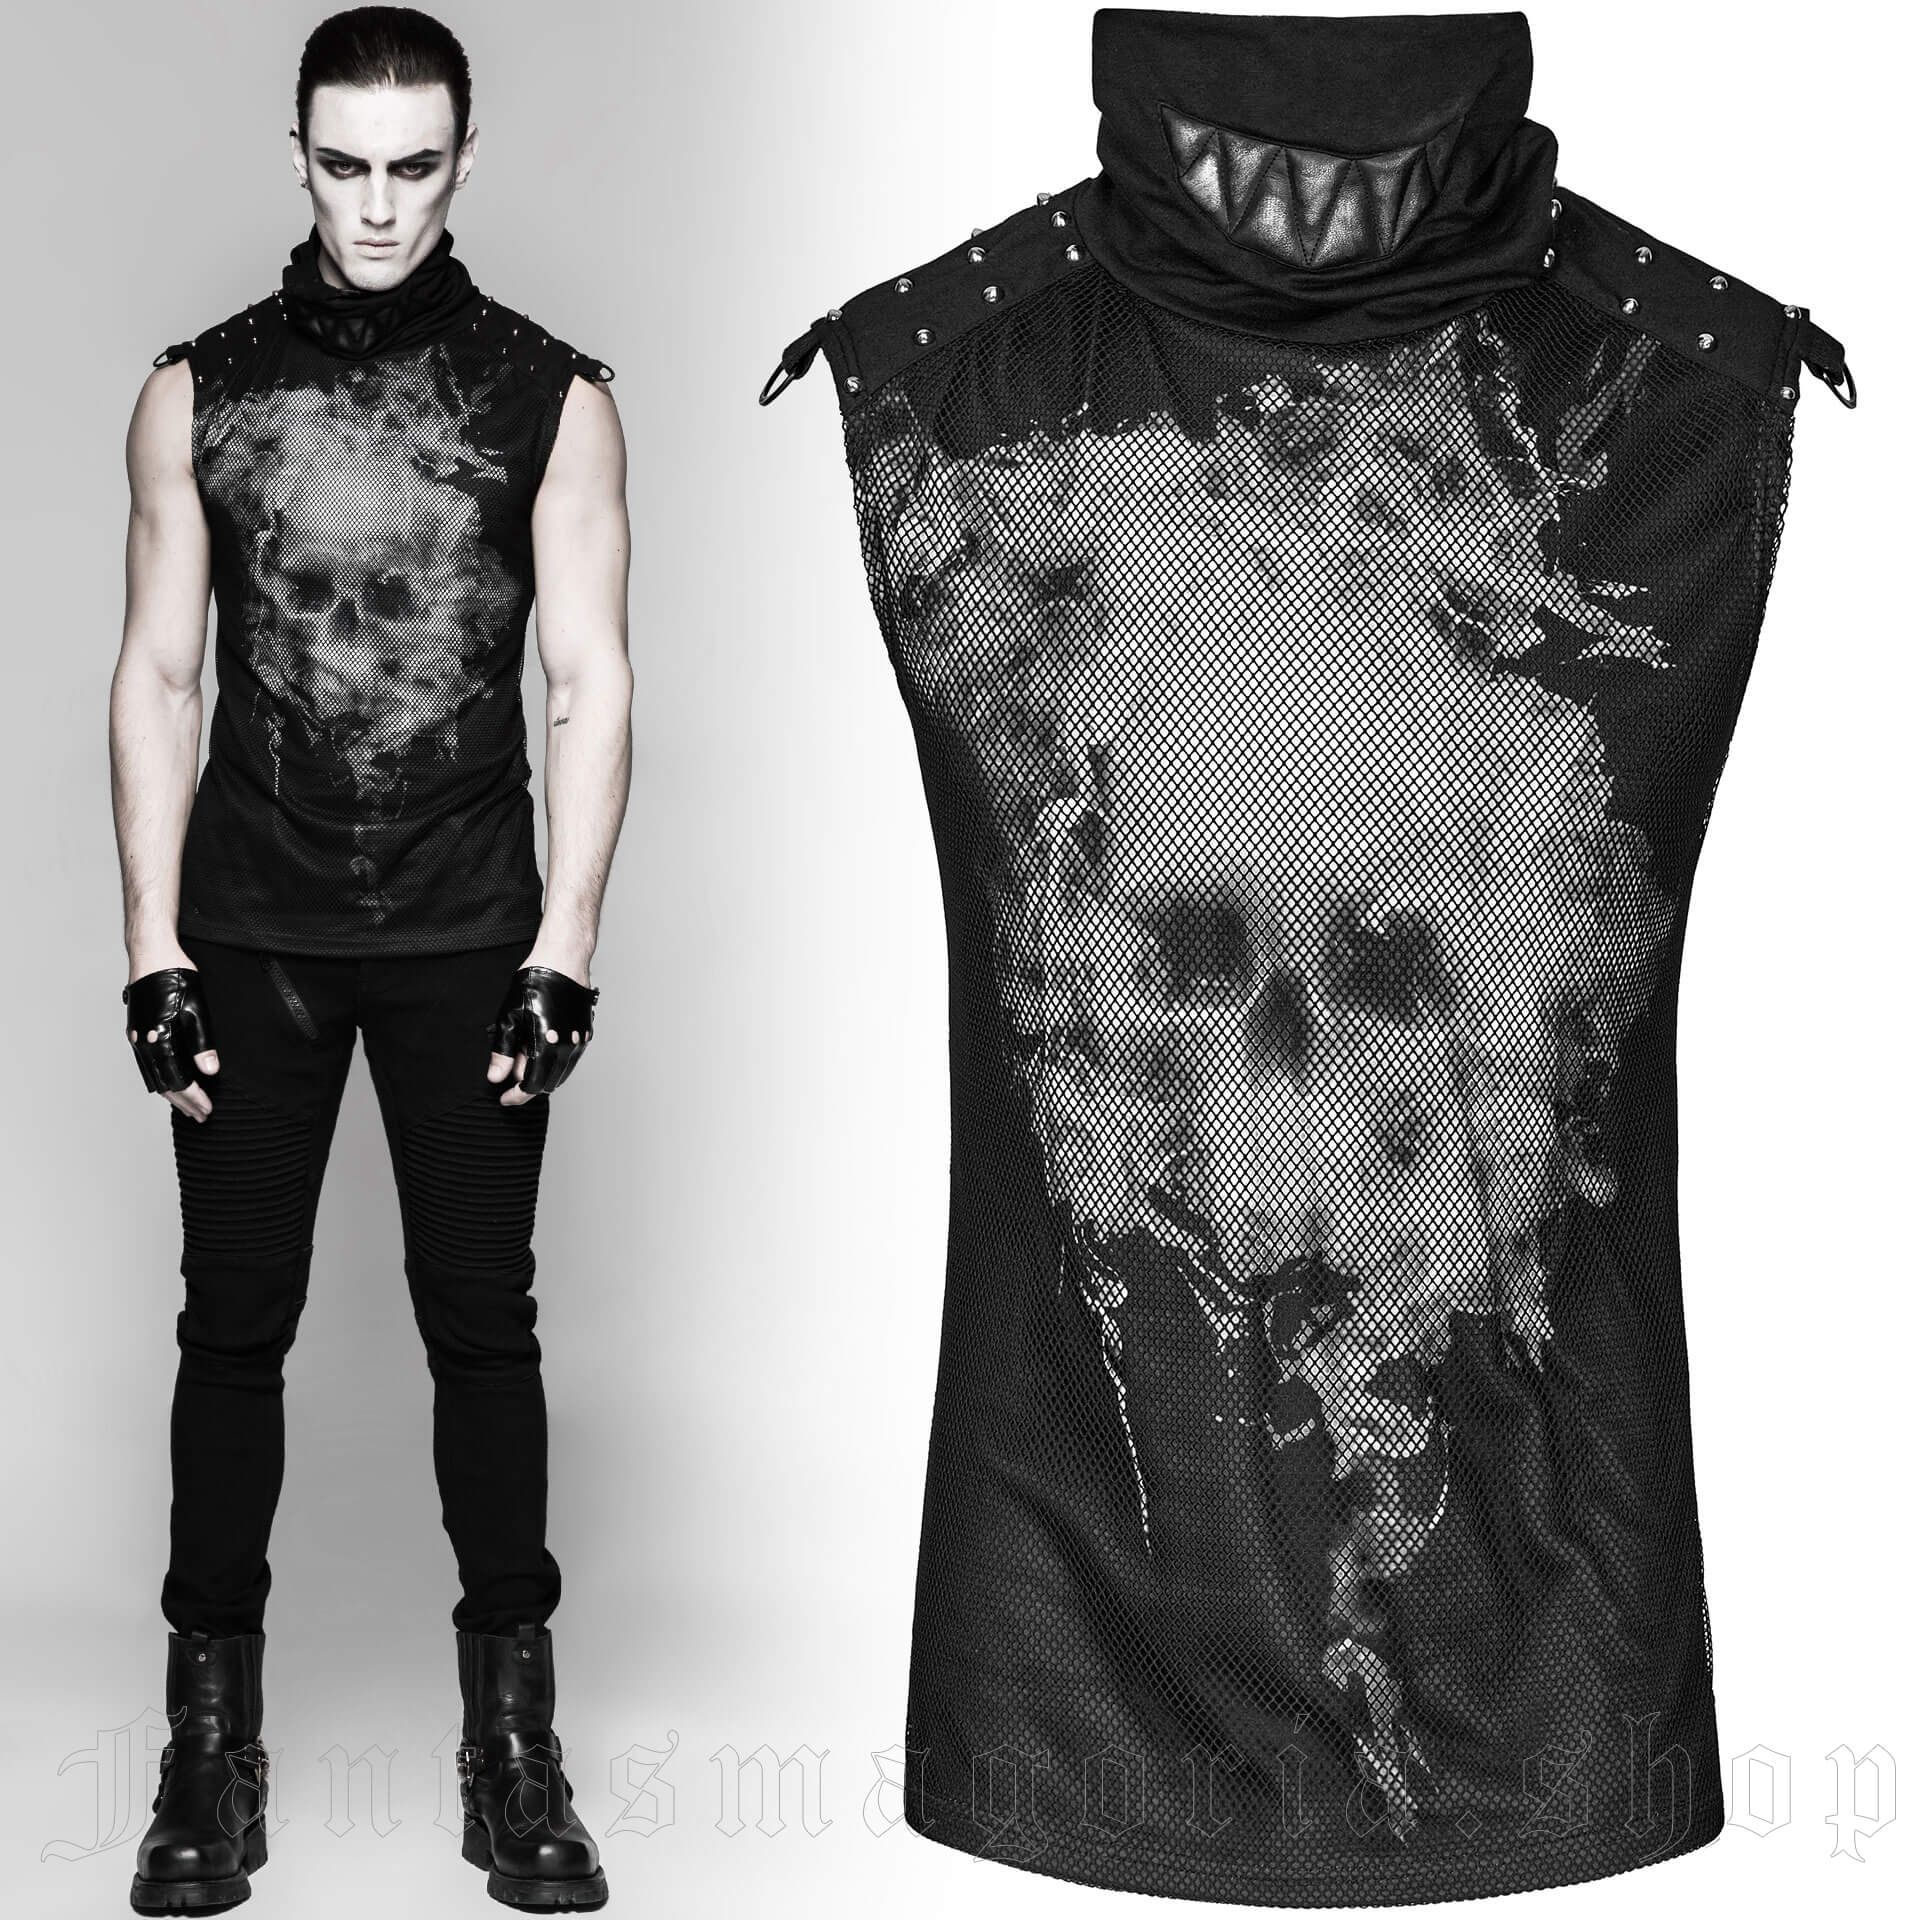 men's Ghosts Top by PUNK RAVE brand, code: T-470